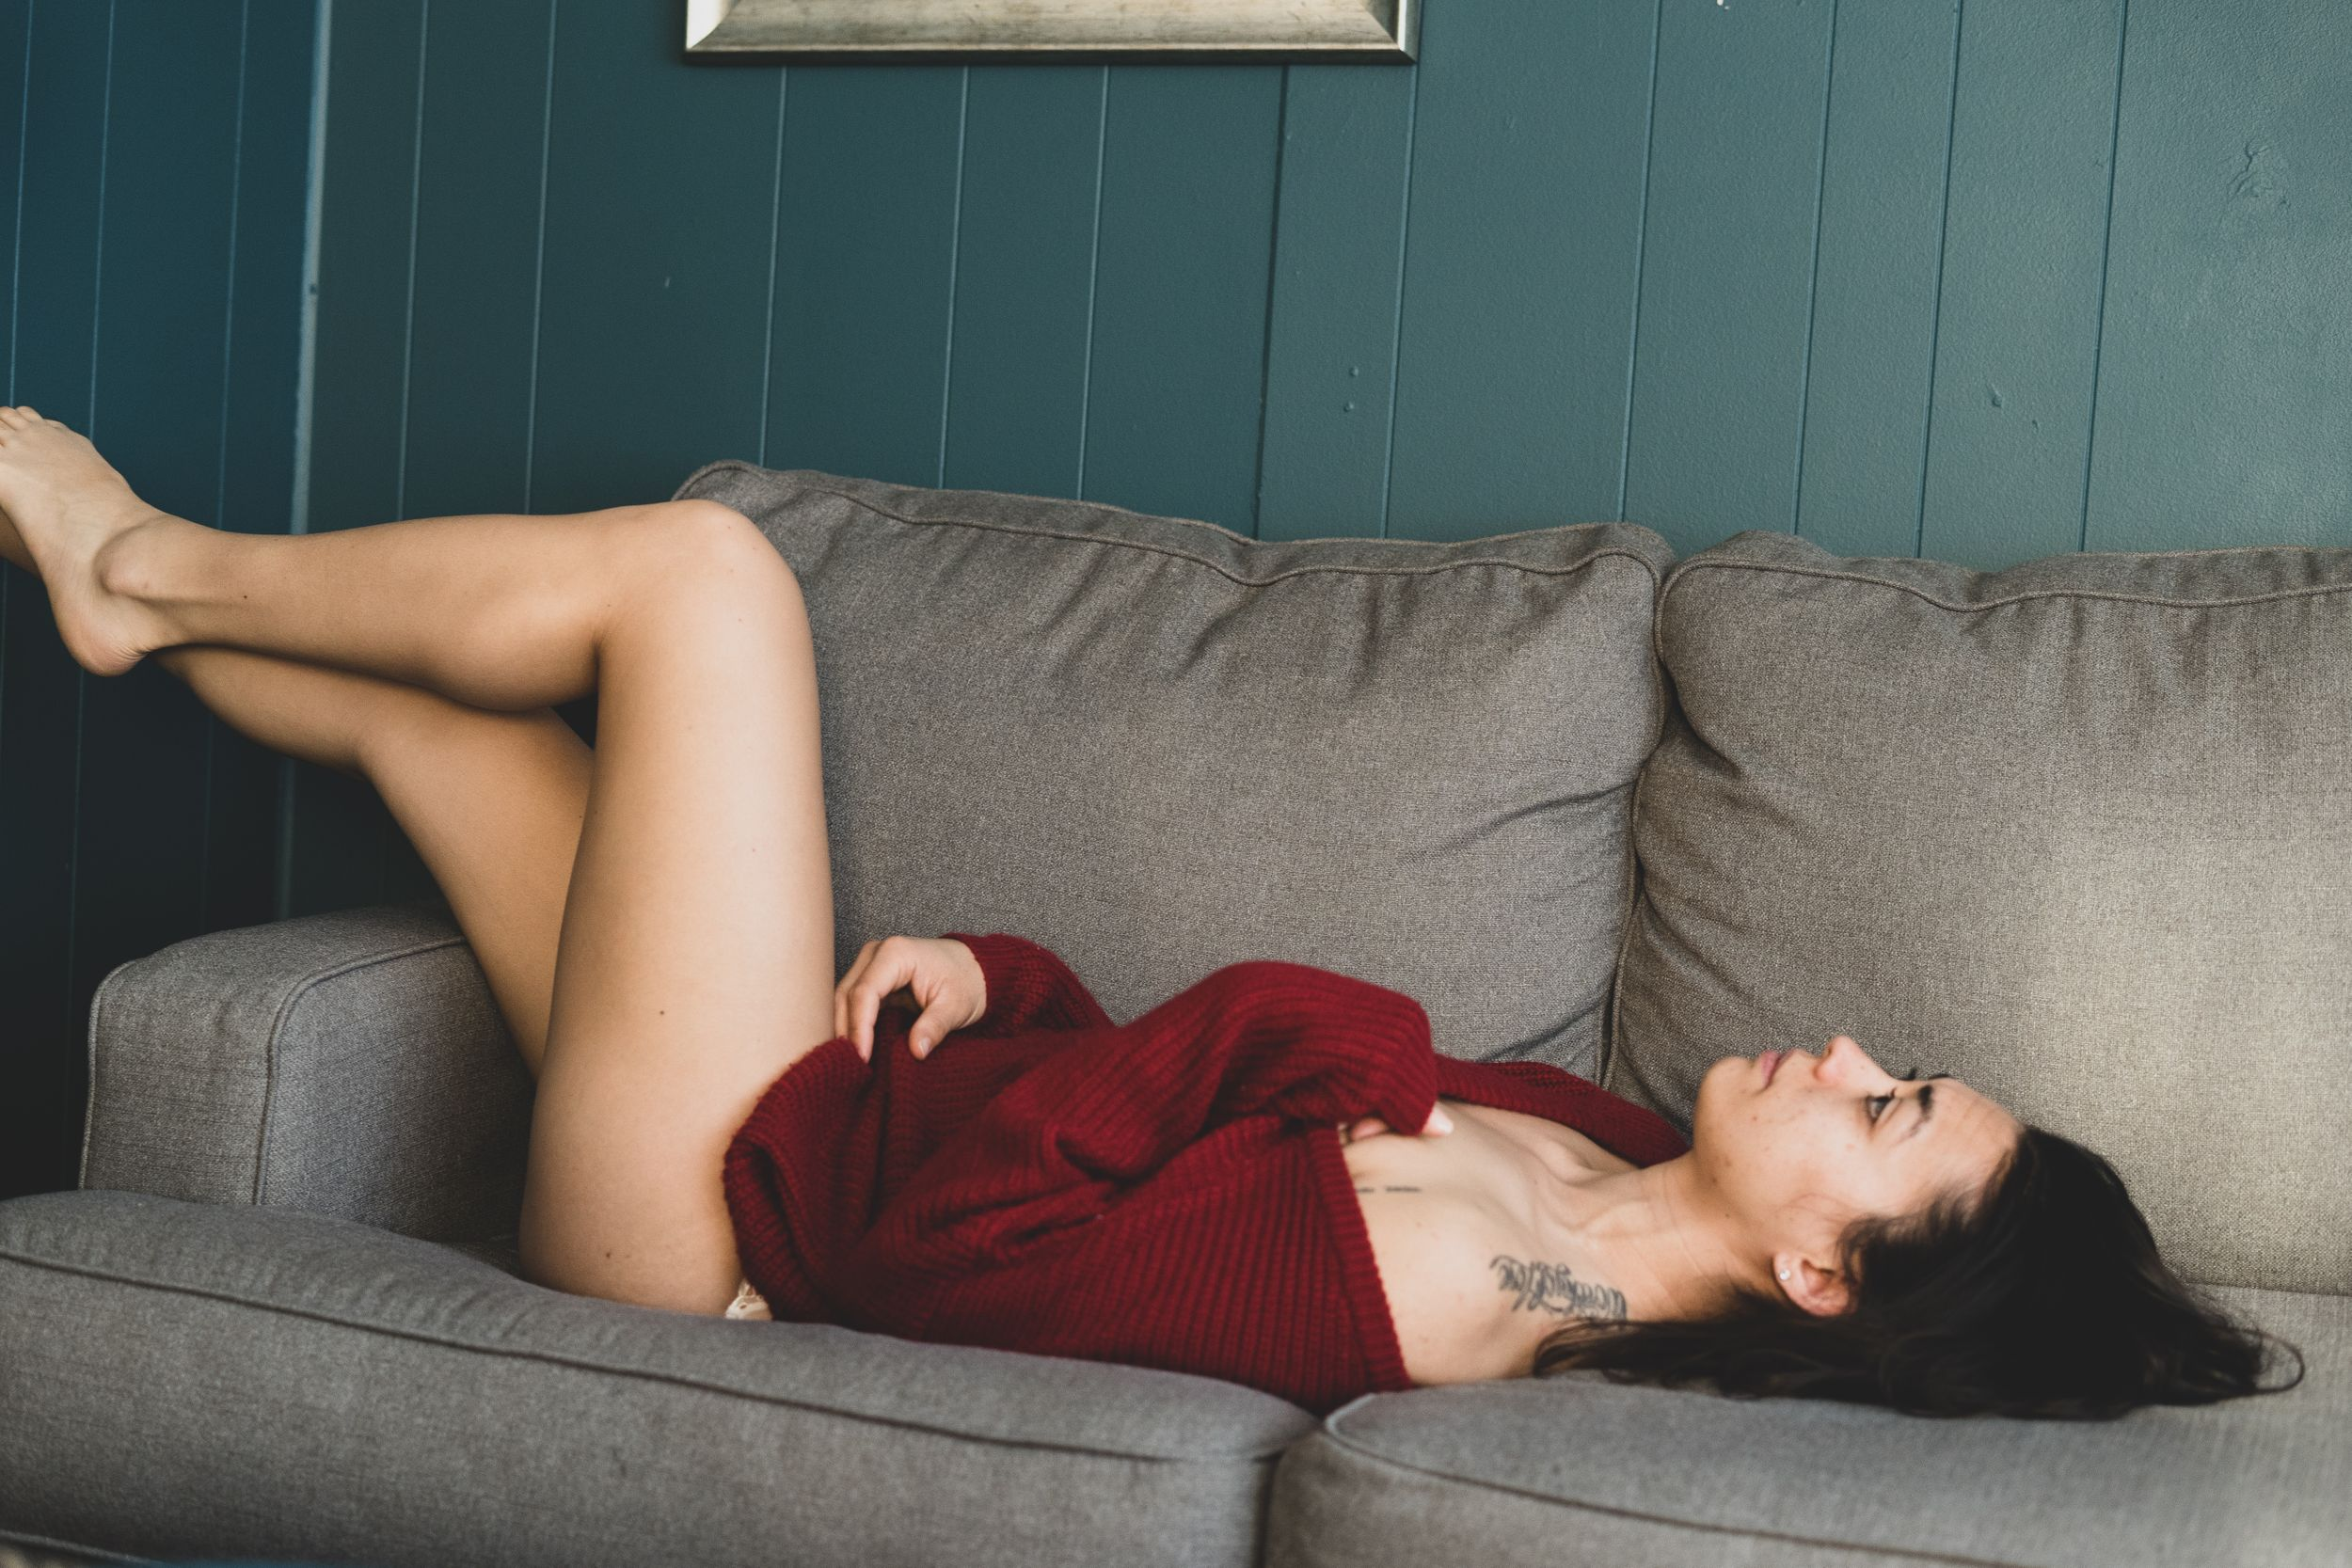 Fearless female session, boudoir session, in-home with cozy red sweater and laying on grey couch